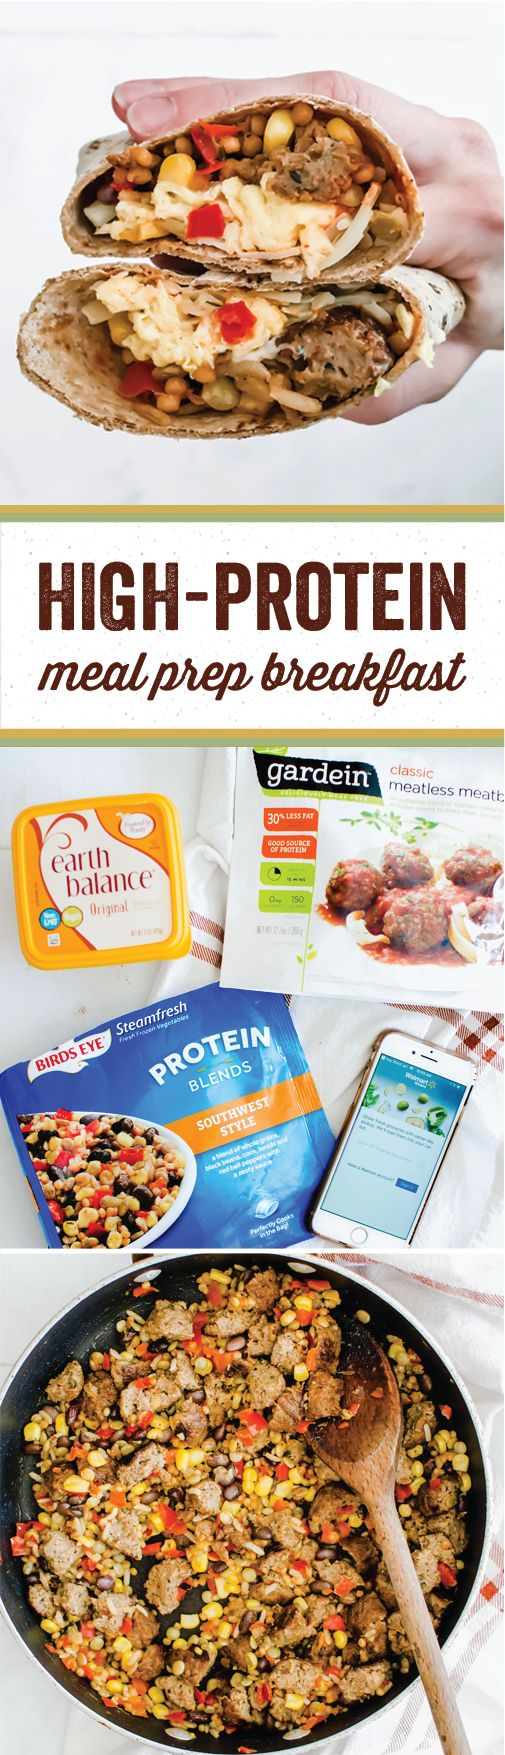 Meal prep is hard enough—throw in healthy dishes and you've got quite the dilemma on your hands! Thankfully, this recipe for High-Protein Freezer-Friendly Breakfast Burritos makes it easier than ever to plan ahead with nutrient-rich dishes. Made with Birds Eye® Protein Blends Southwest Style Veggies, Gardein® Classic Meatless Meatballs, and Earth Balance® Original Buttery Spread, you can find everything you'll need to make this meatless meal for yourself at Walmart!